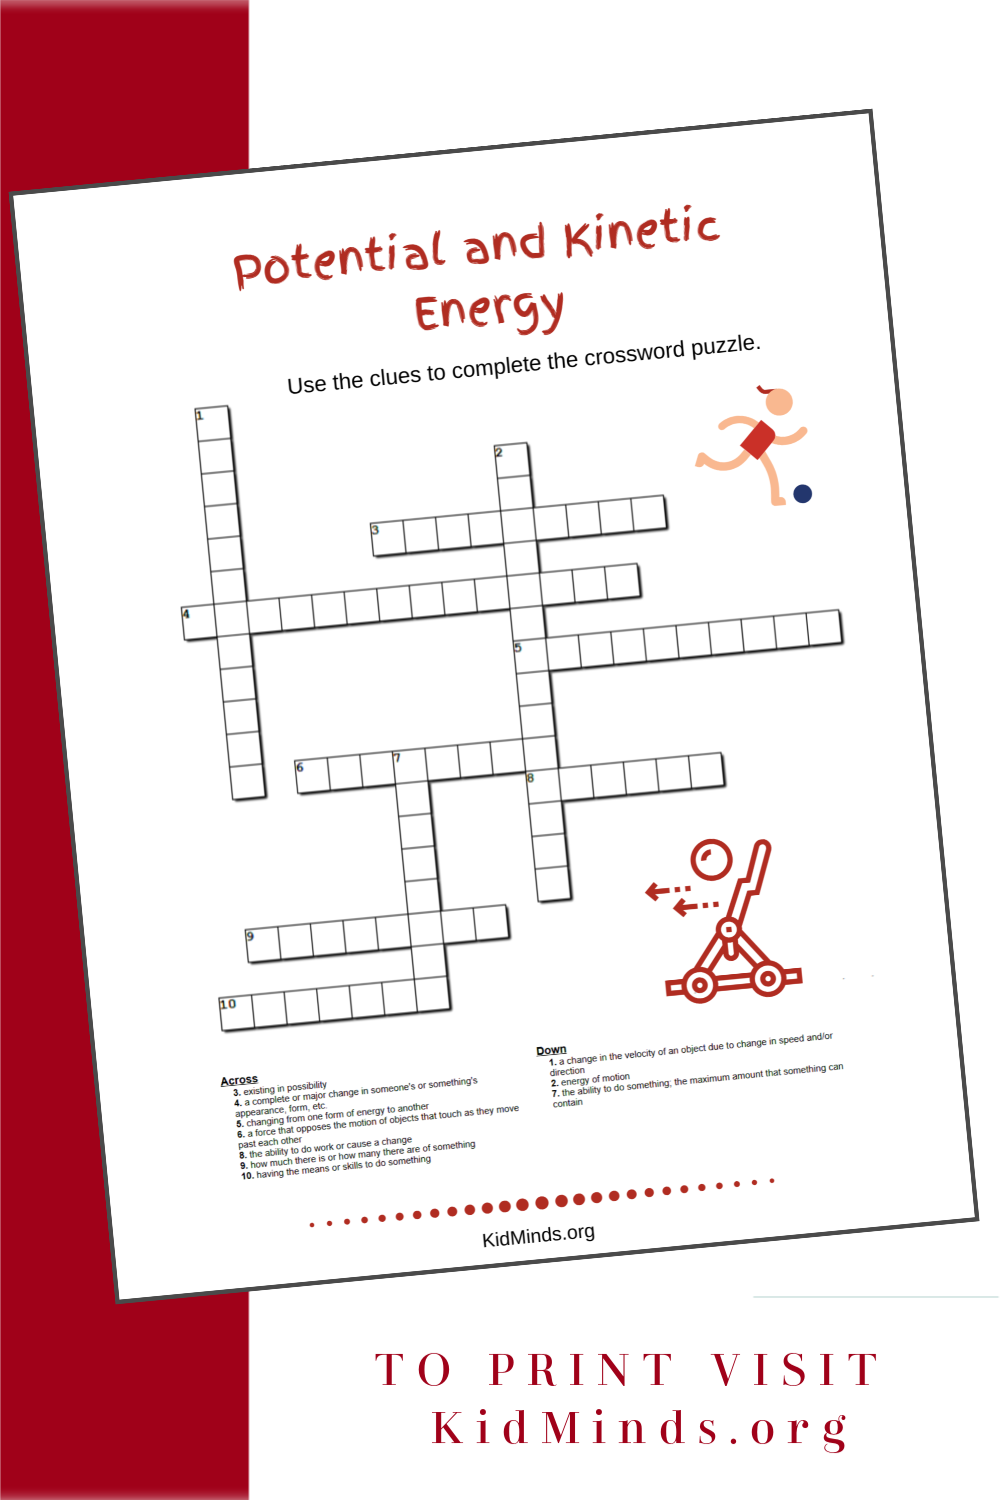 Are you learning about types of energy with your kids? This word search is fun and educational. #printables #scienceforkids #kidminds #handsonlearning #STEAM